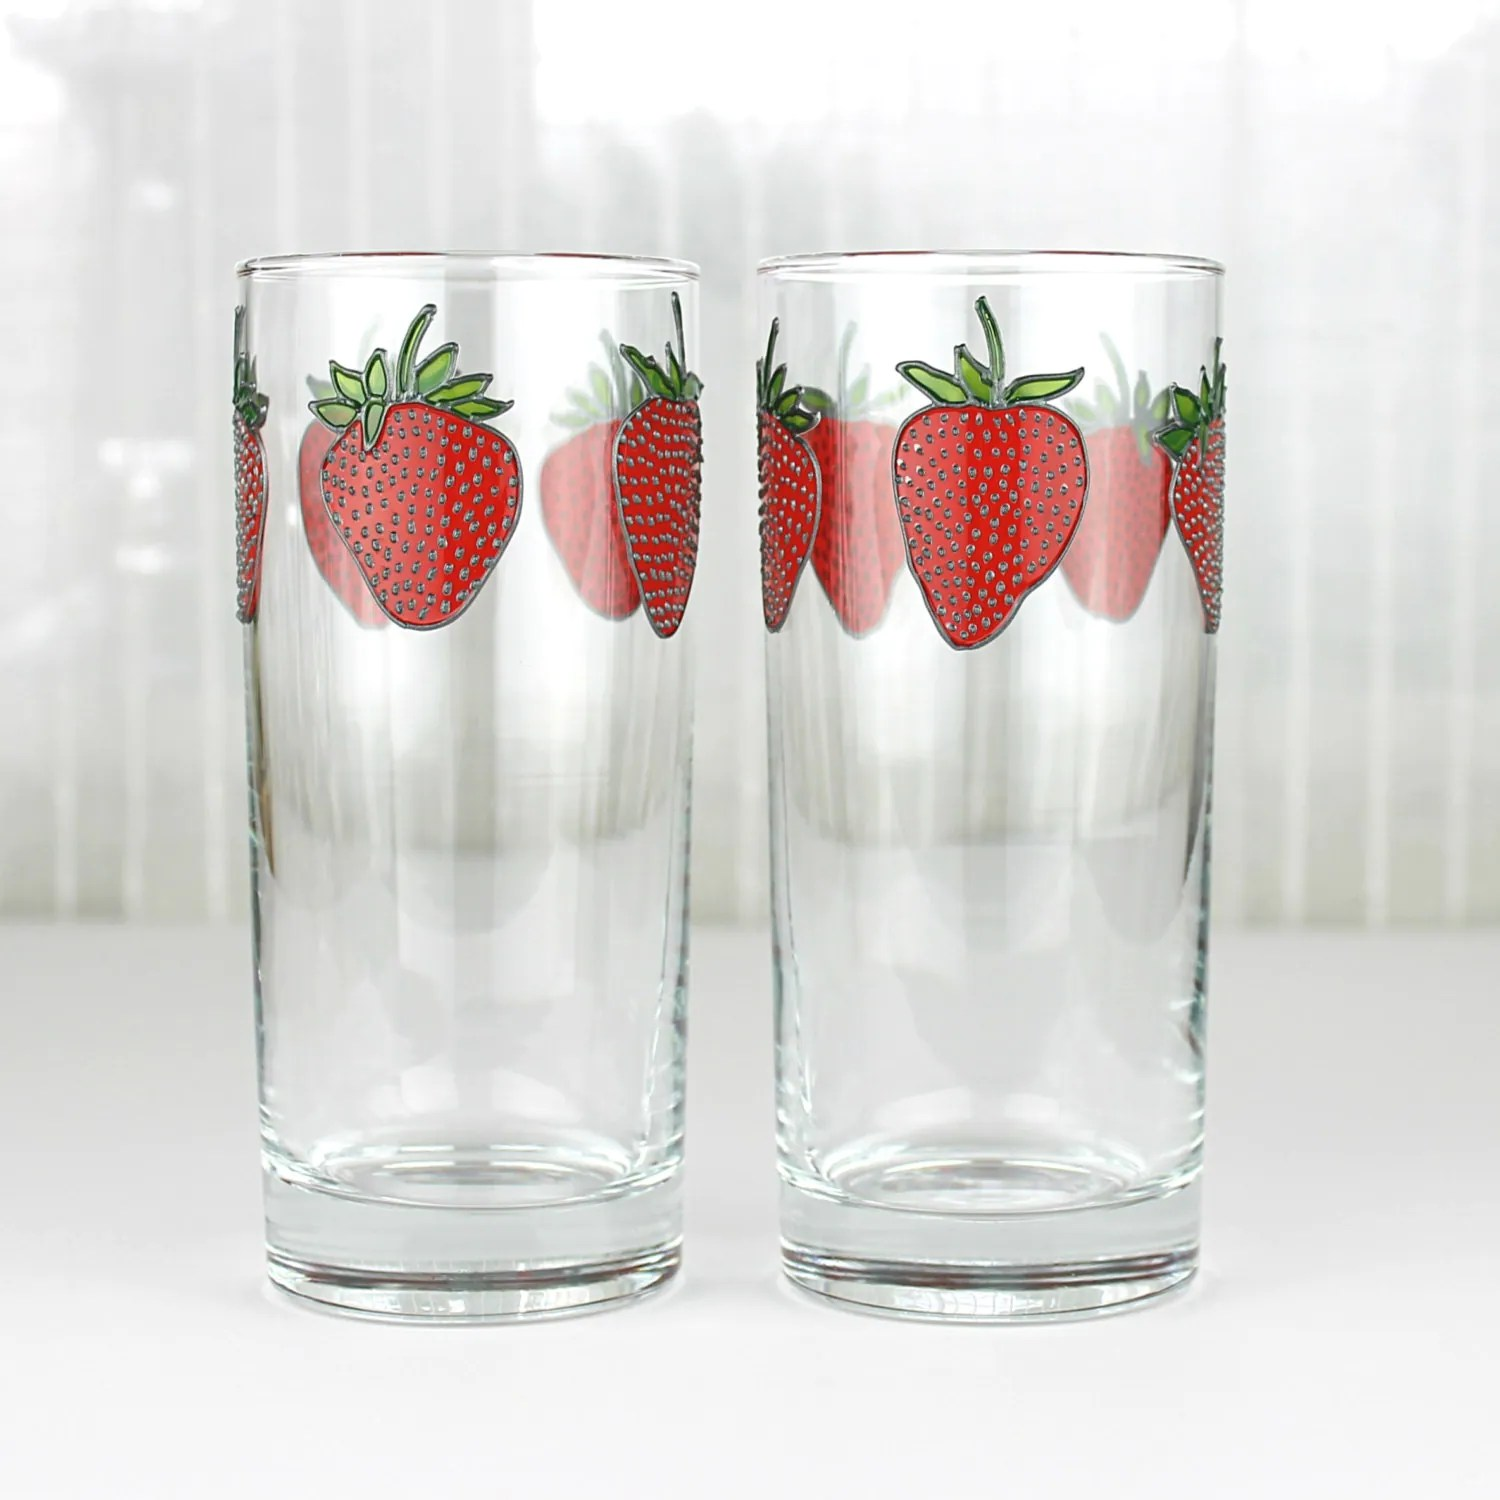 Drinking Glasses Designs Strawberry Drinking Glasses Set Of 2 Hand Painted Crystal